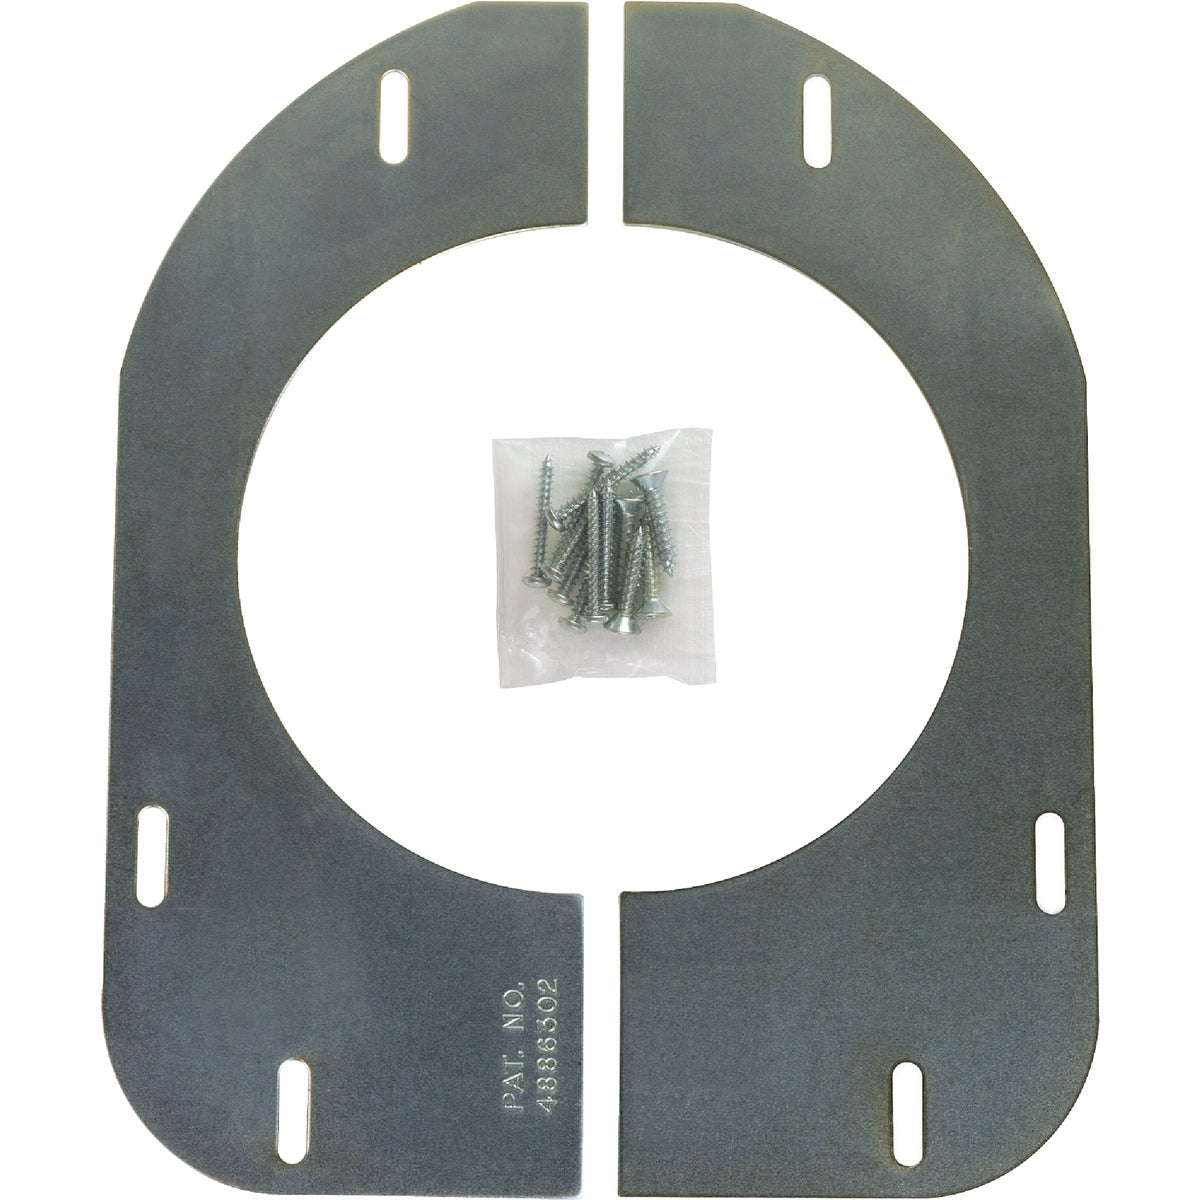 CLOSET FLANGE SUPPORT - 490-11322 by Sioux Chief Mfg